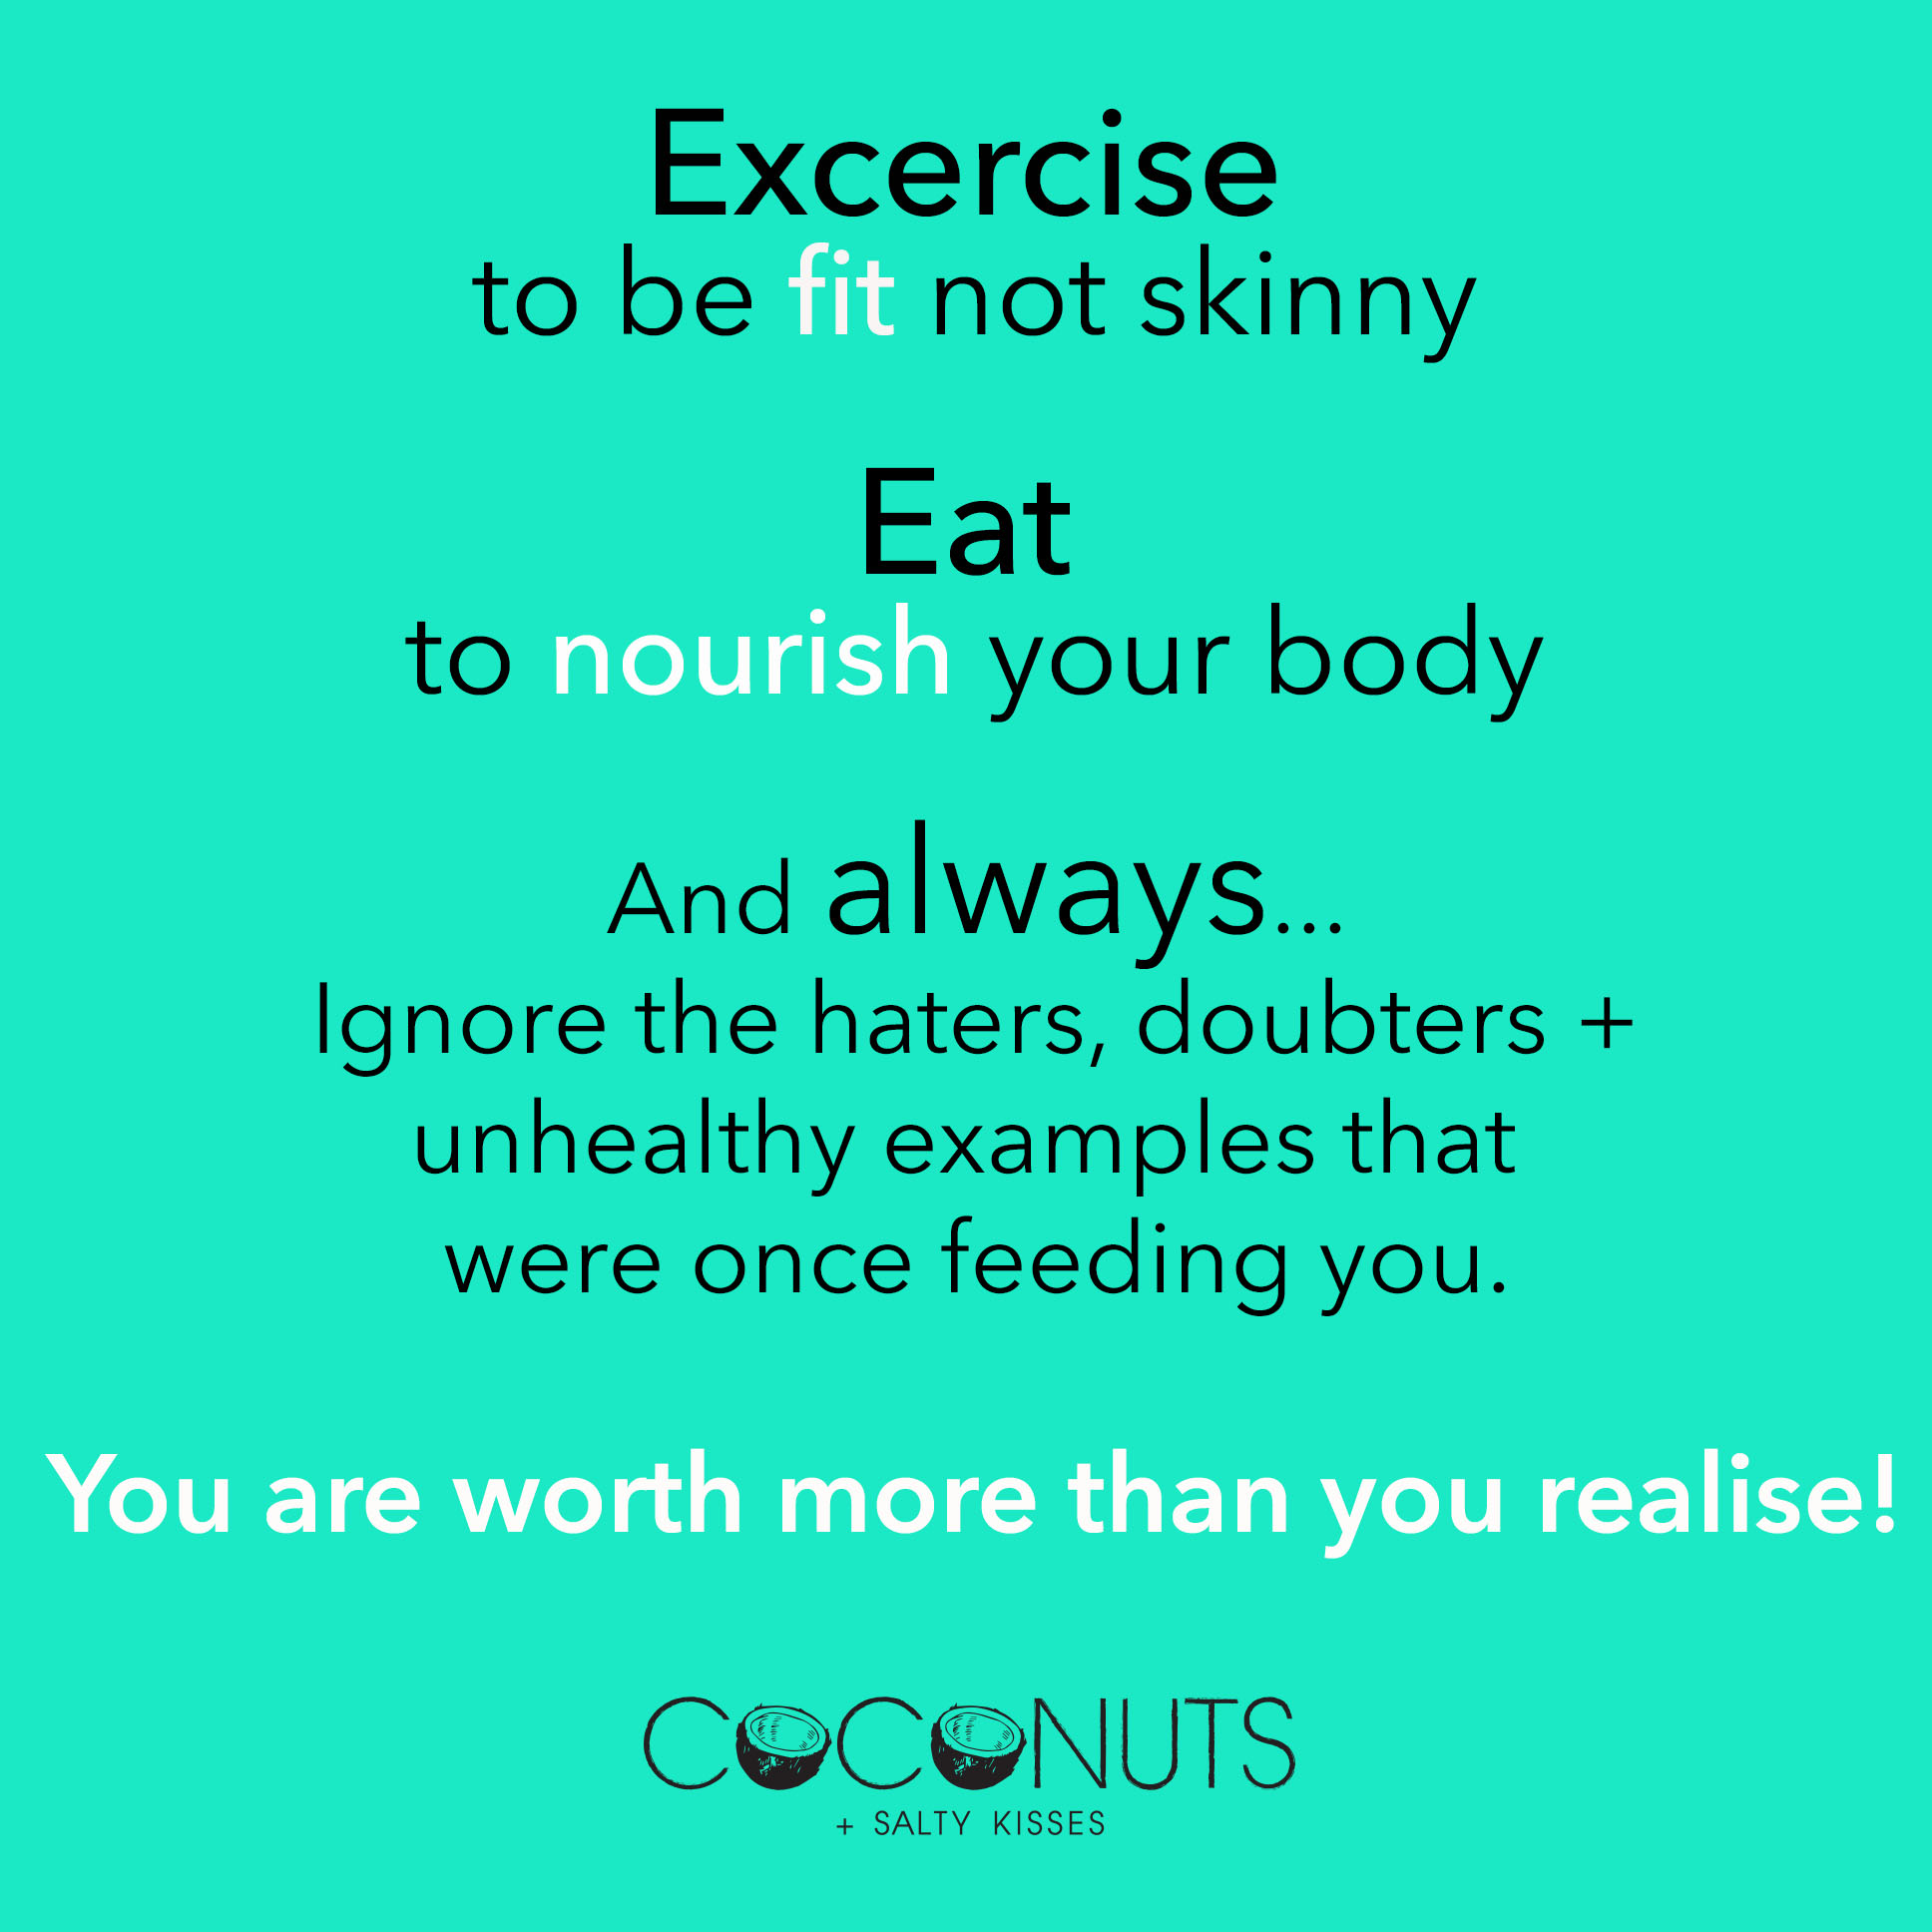 instagram-quote-excerise-to-be-fit1.jpg